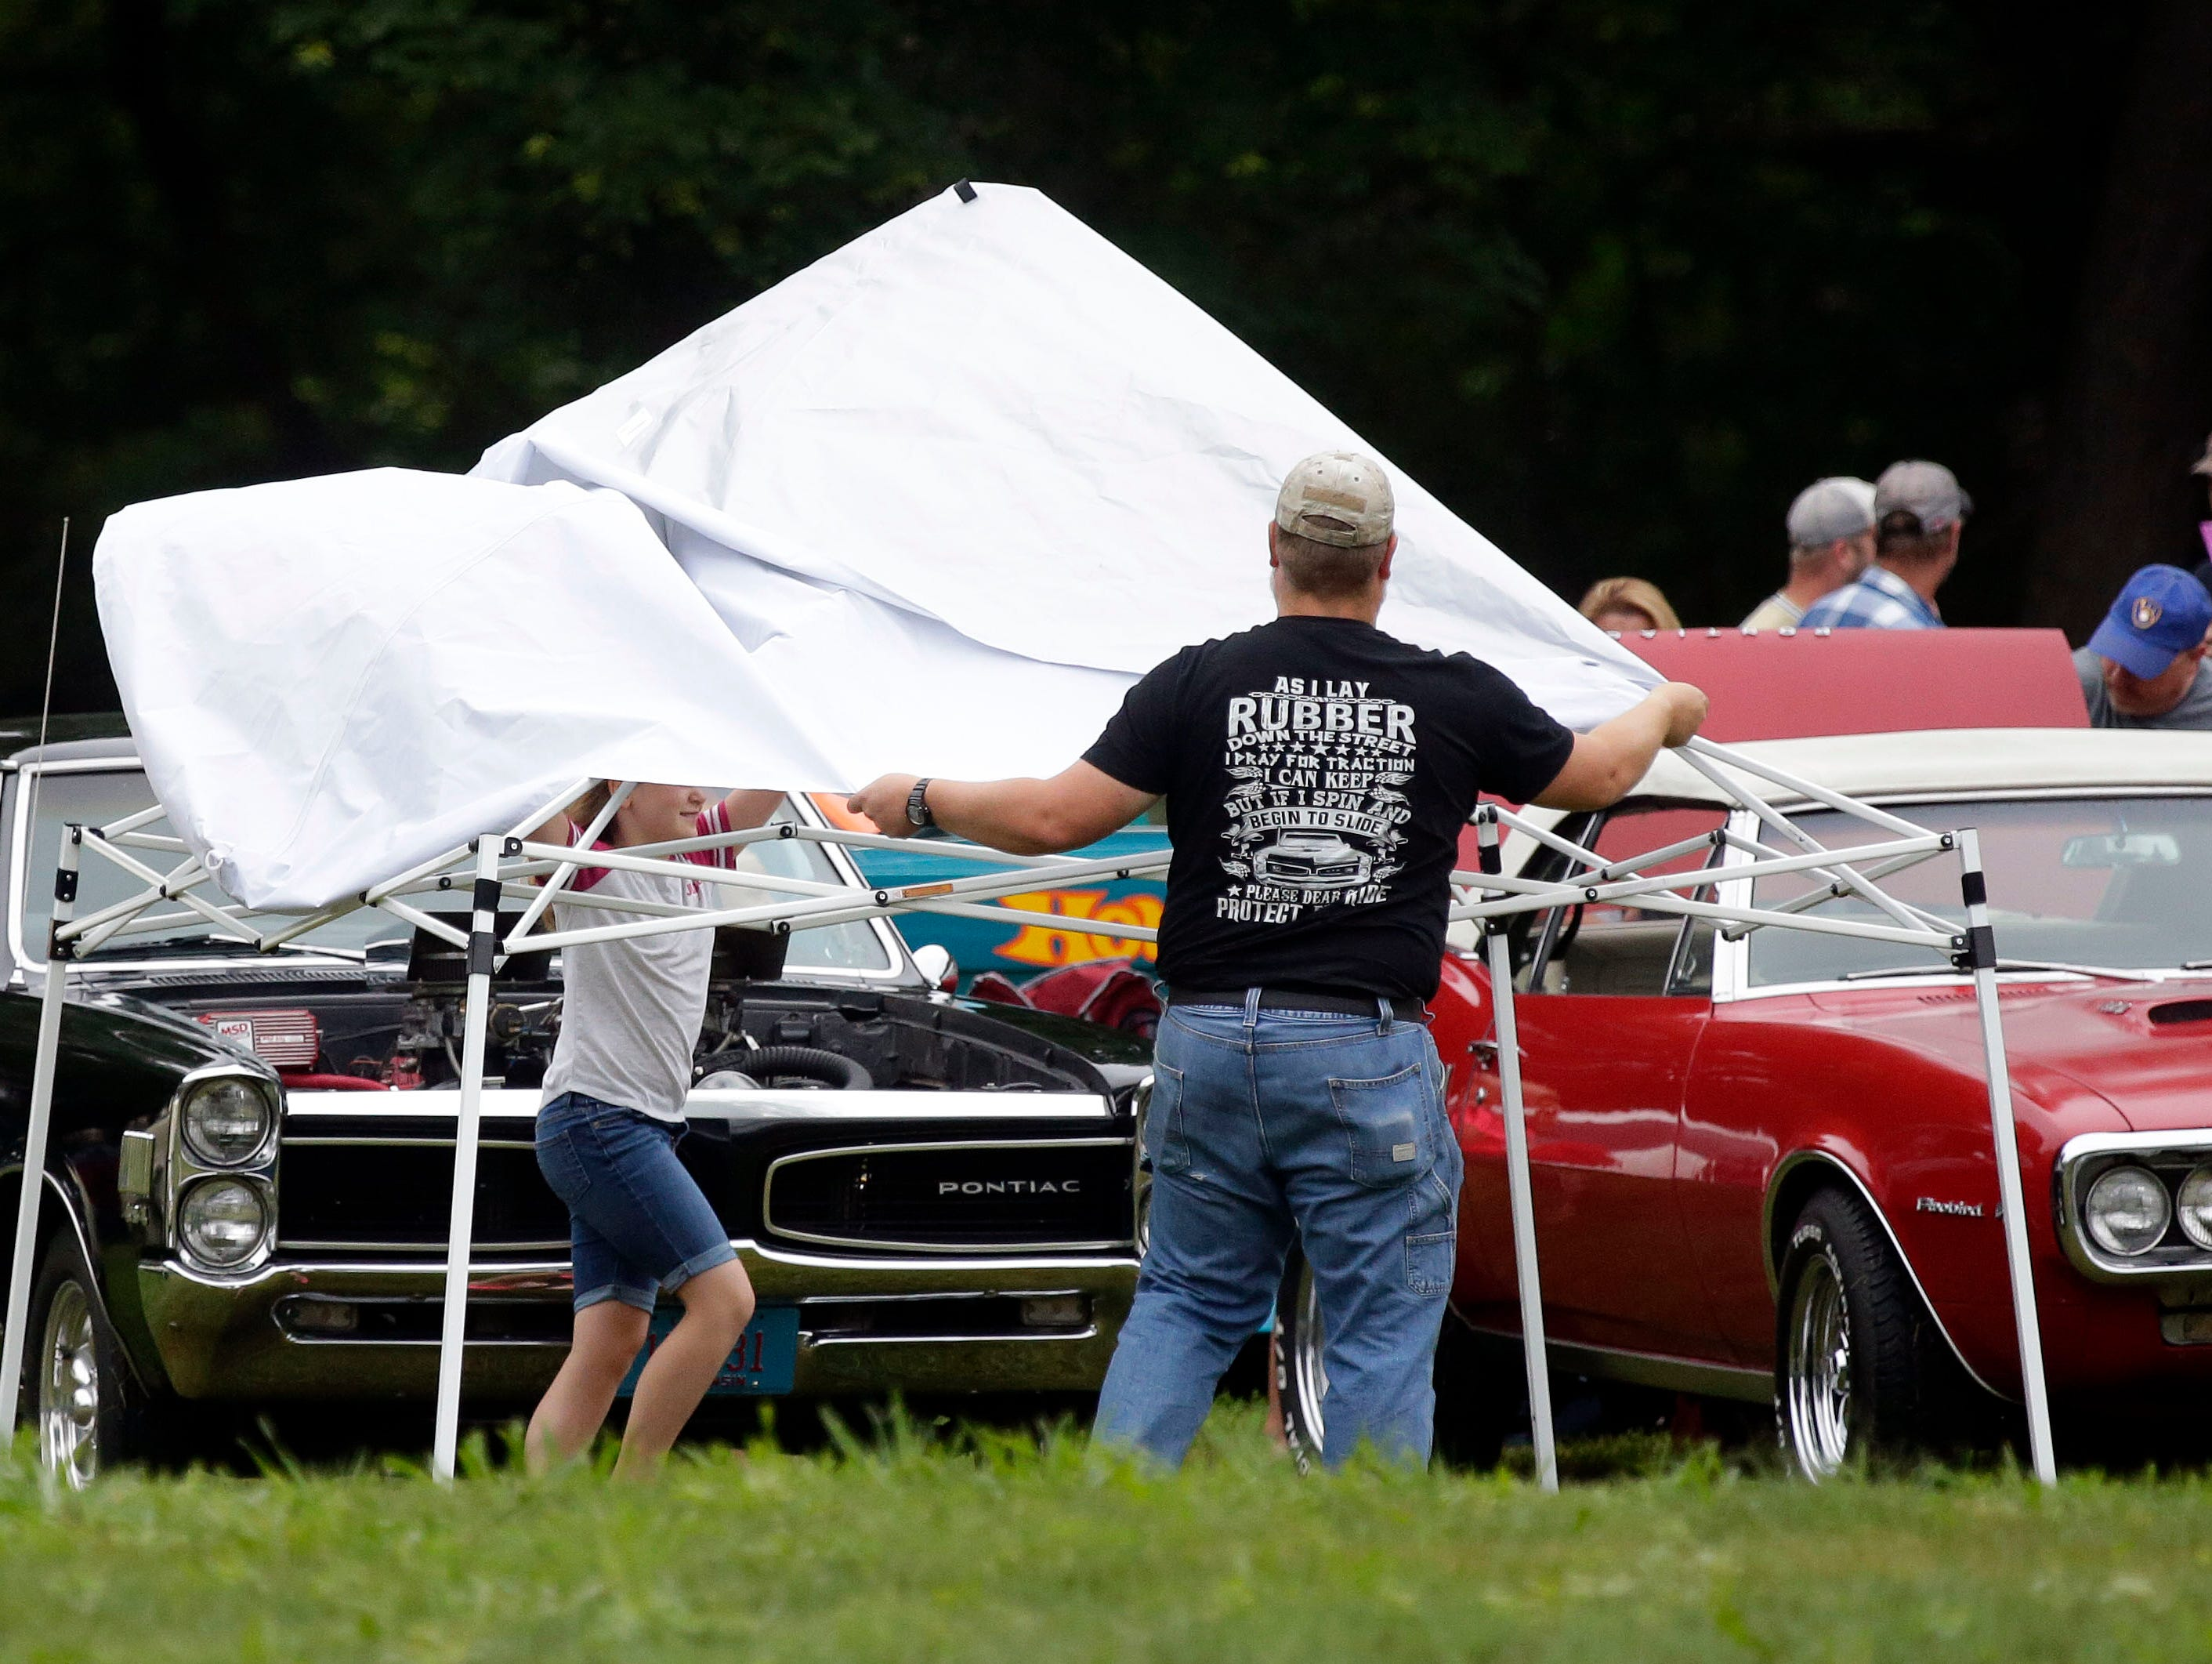 Andy Nelson gets help from his daughter, Kali, as they unfold a canopy during the Appleton Old Car Show and Swap Meet Sunday, July 22, 2018, at Pierce Park in Appleton, Wis.